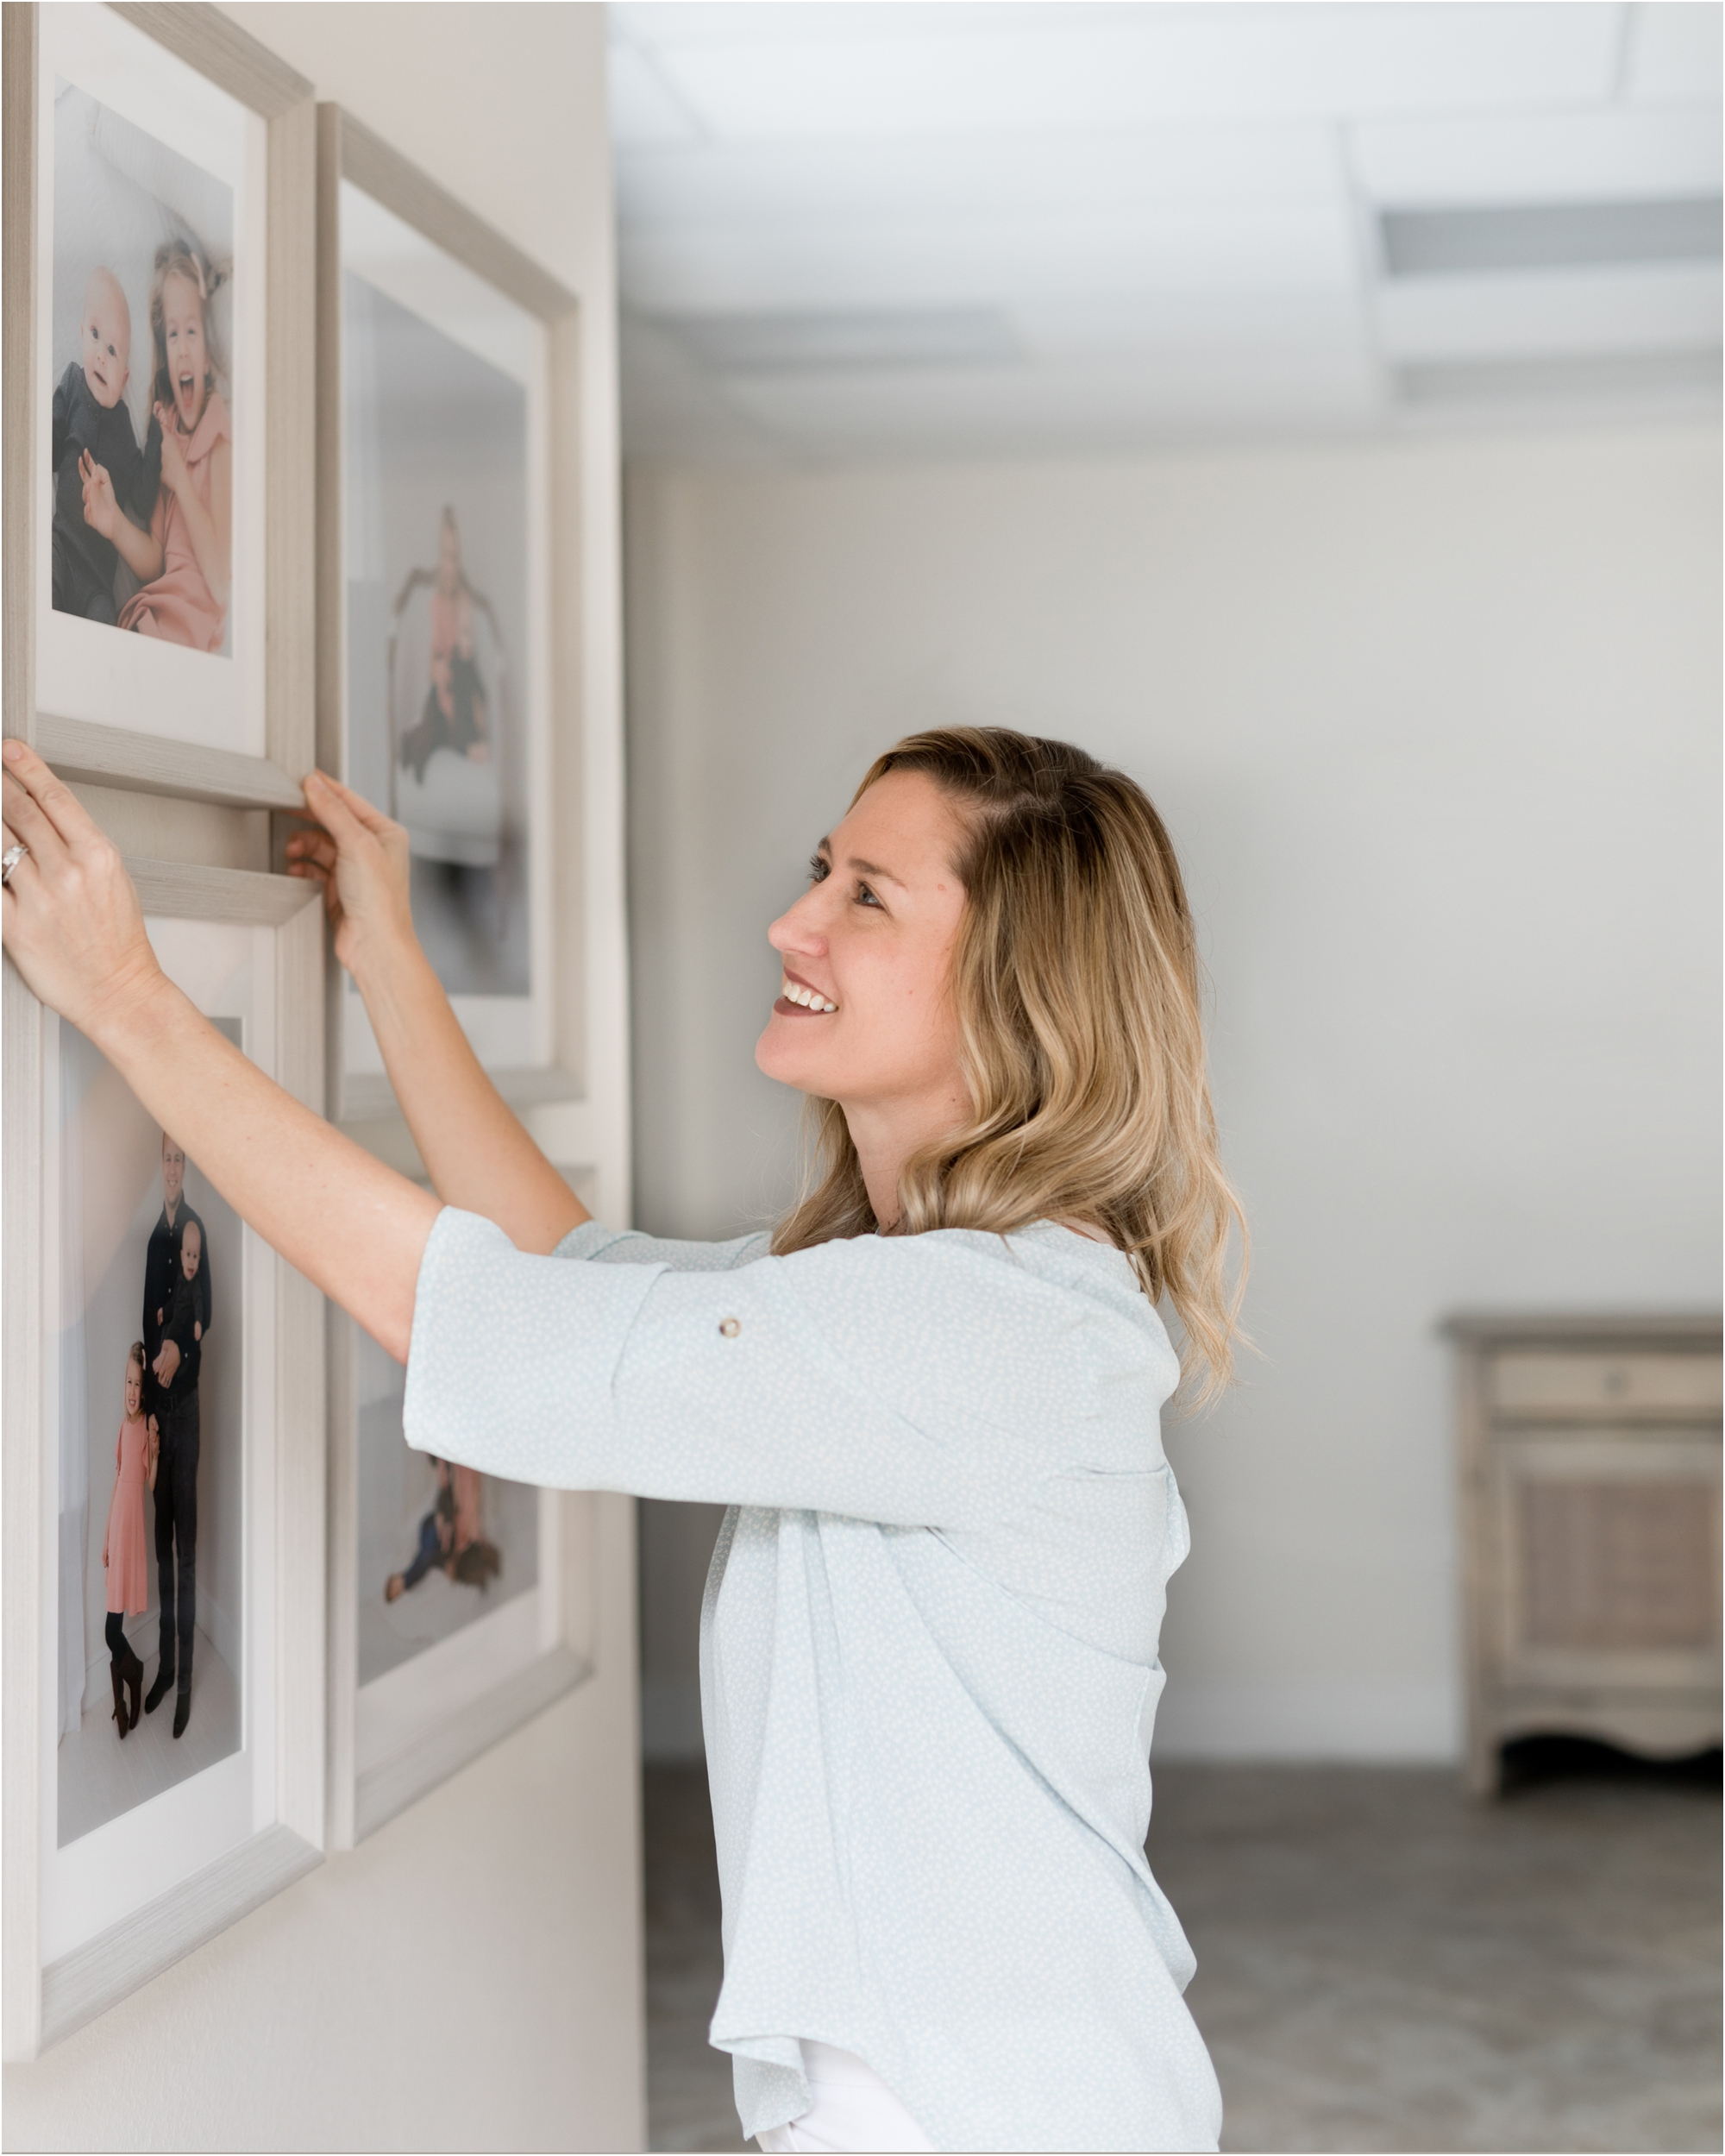 Image of Kelly from Lifetime of Clicks Photography installing framing.